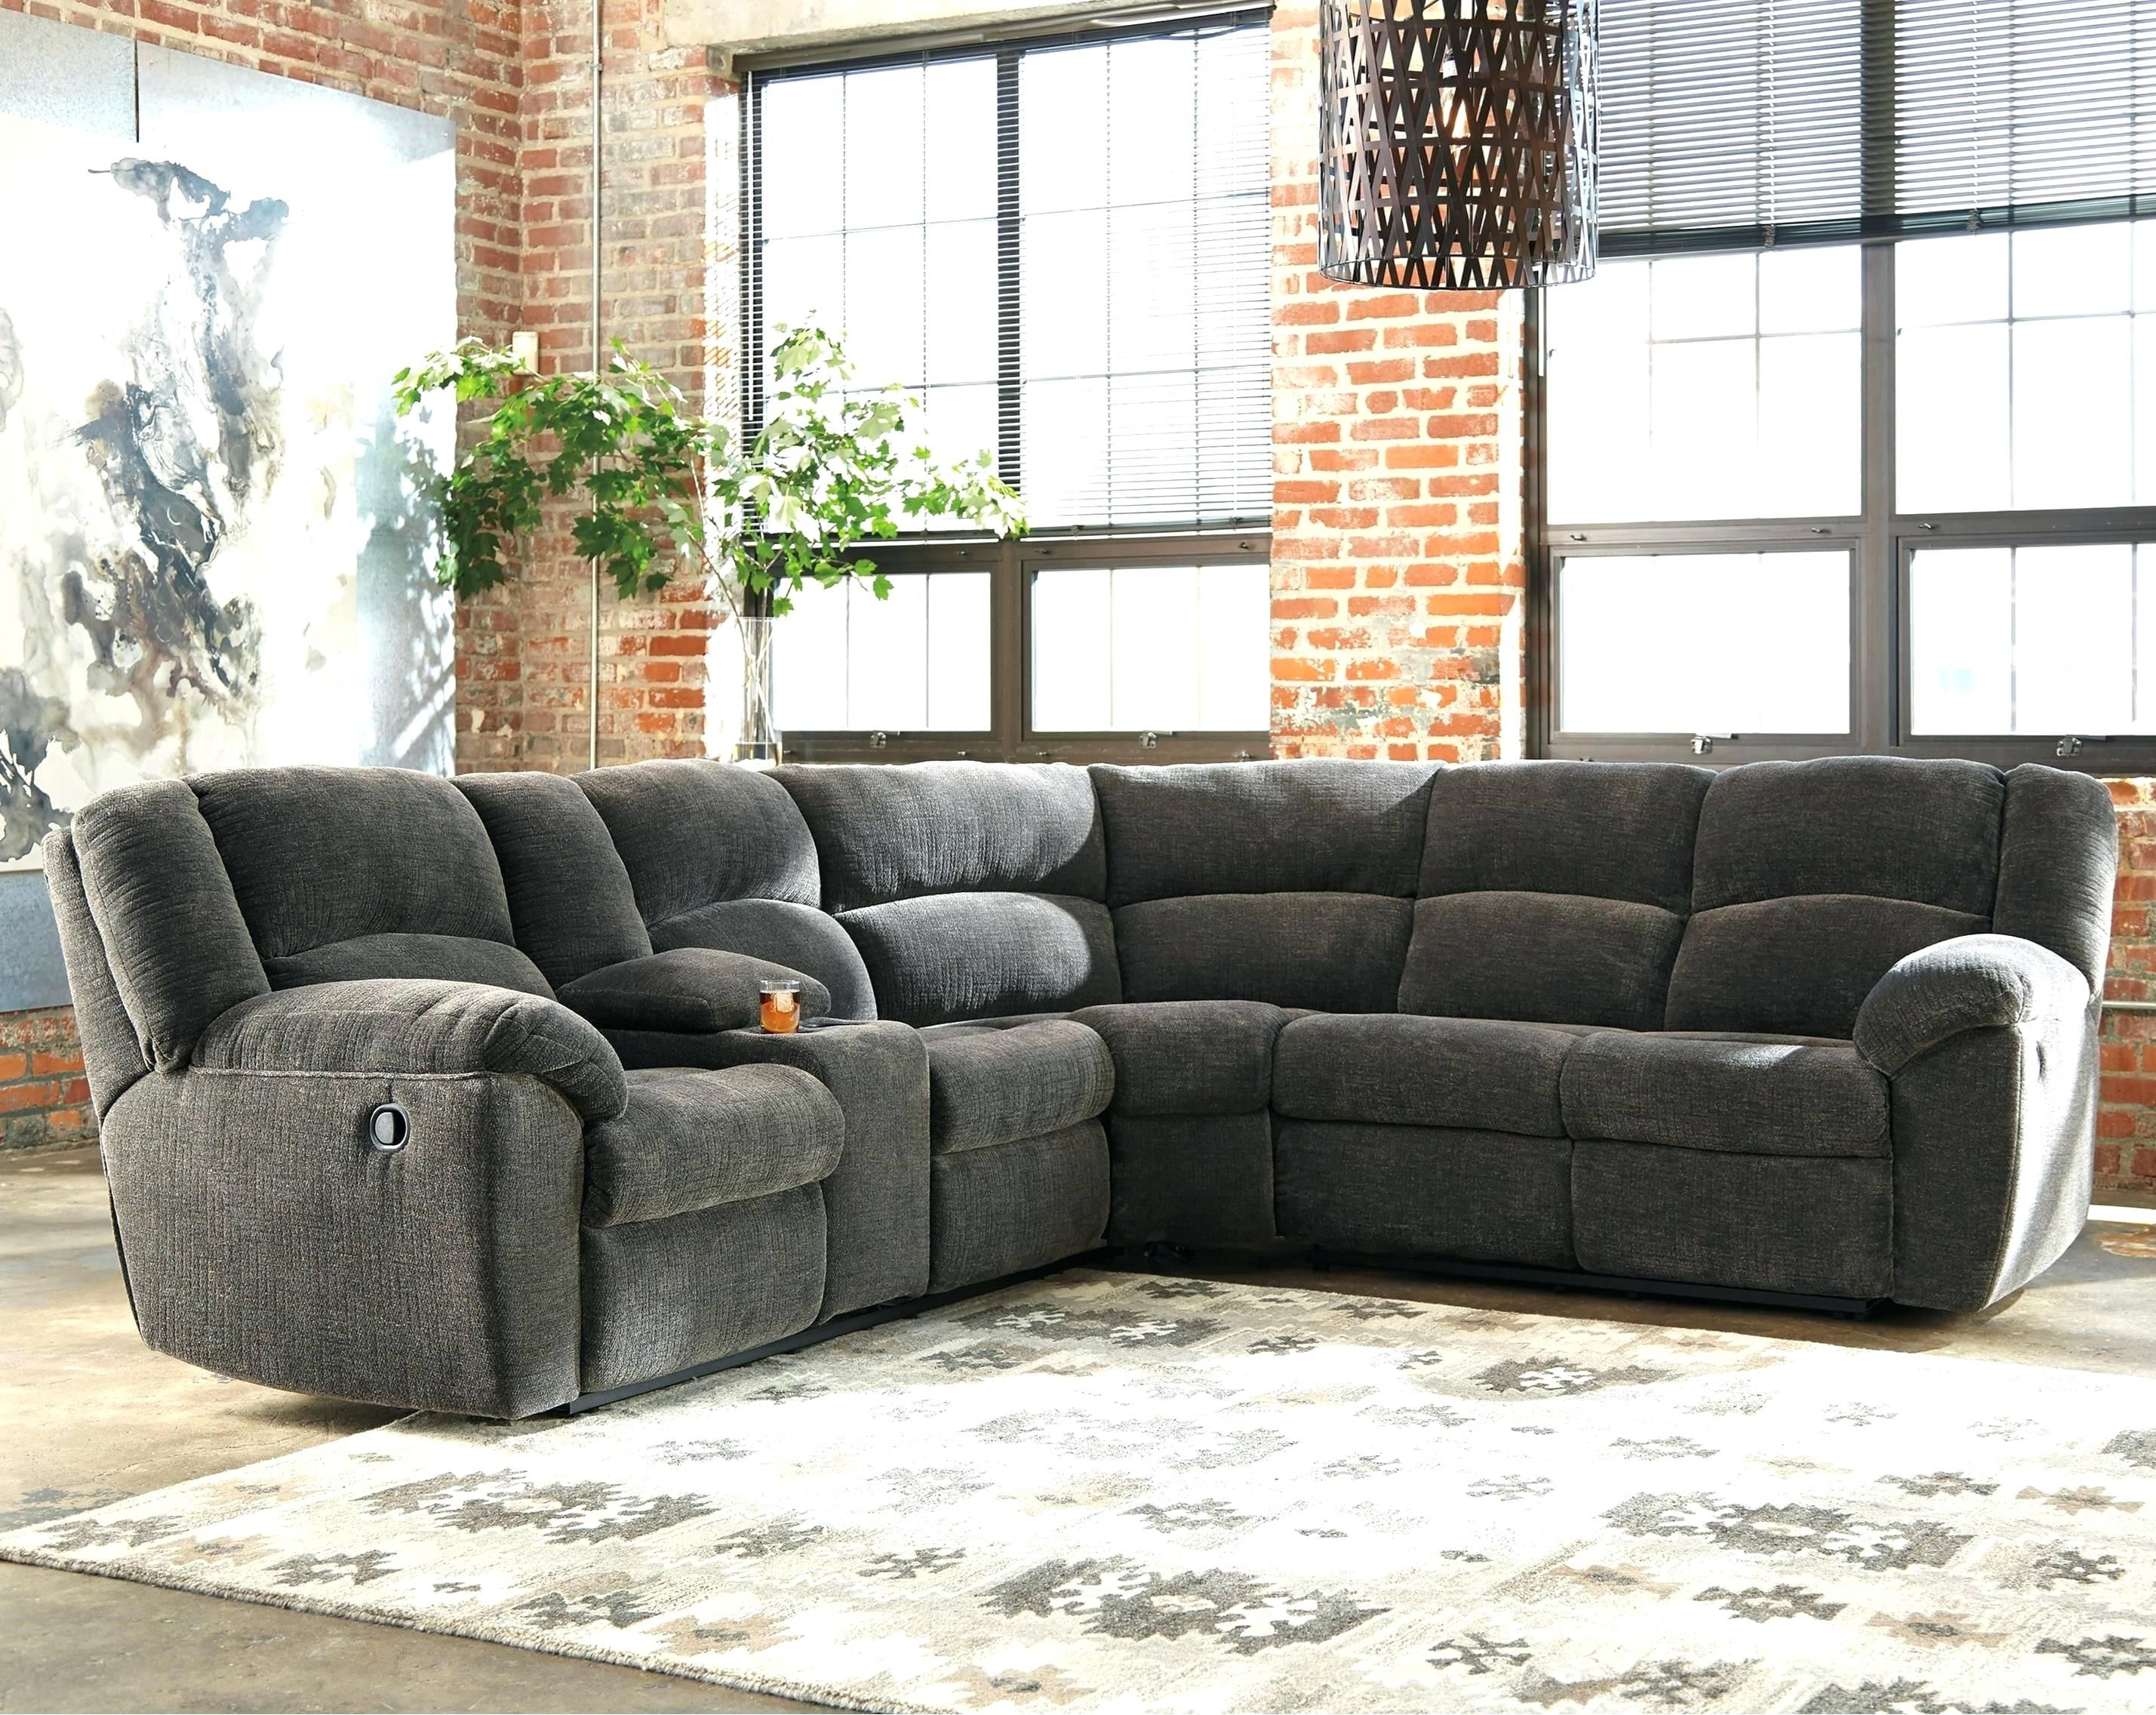 style loveseat sofas leather furniture sofa black of sectional under affordable century full size mid modern couch danish